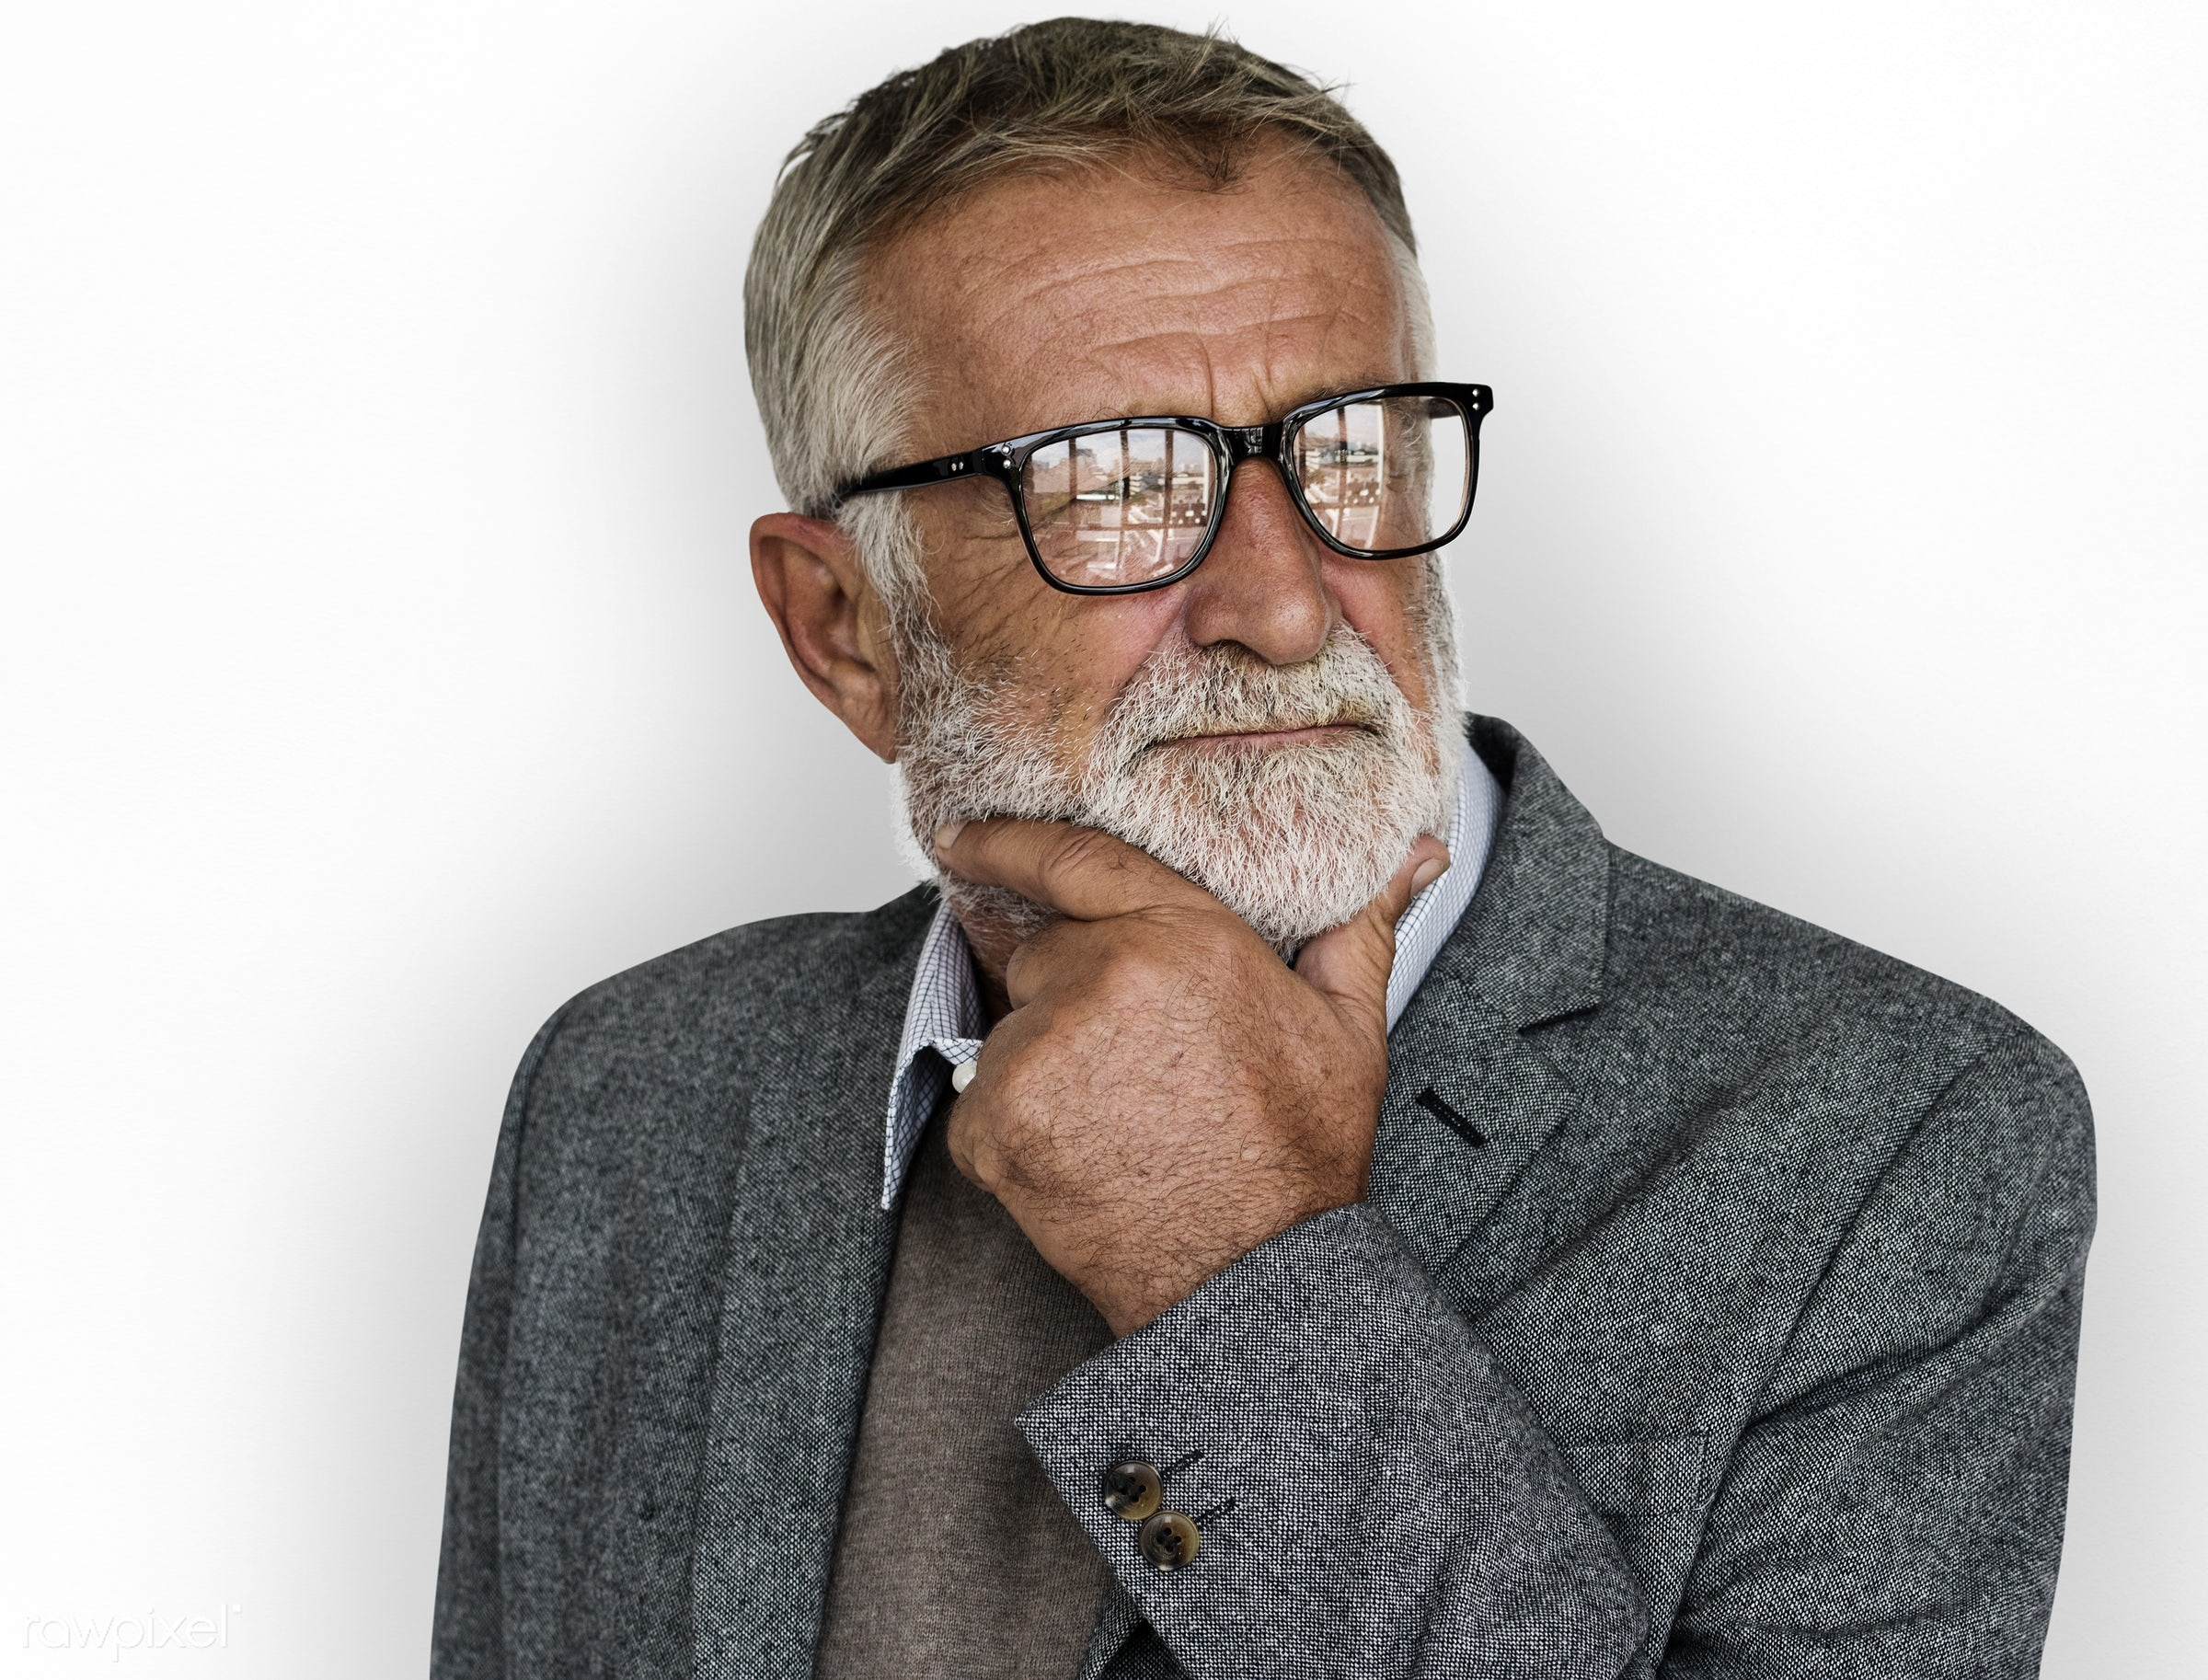 studio, expression, face, person, glasses, isolated on white, courage, carefree, people, business, businessman, fresh,...